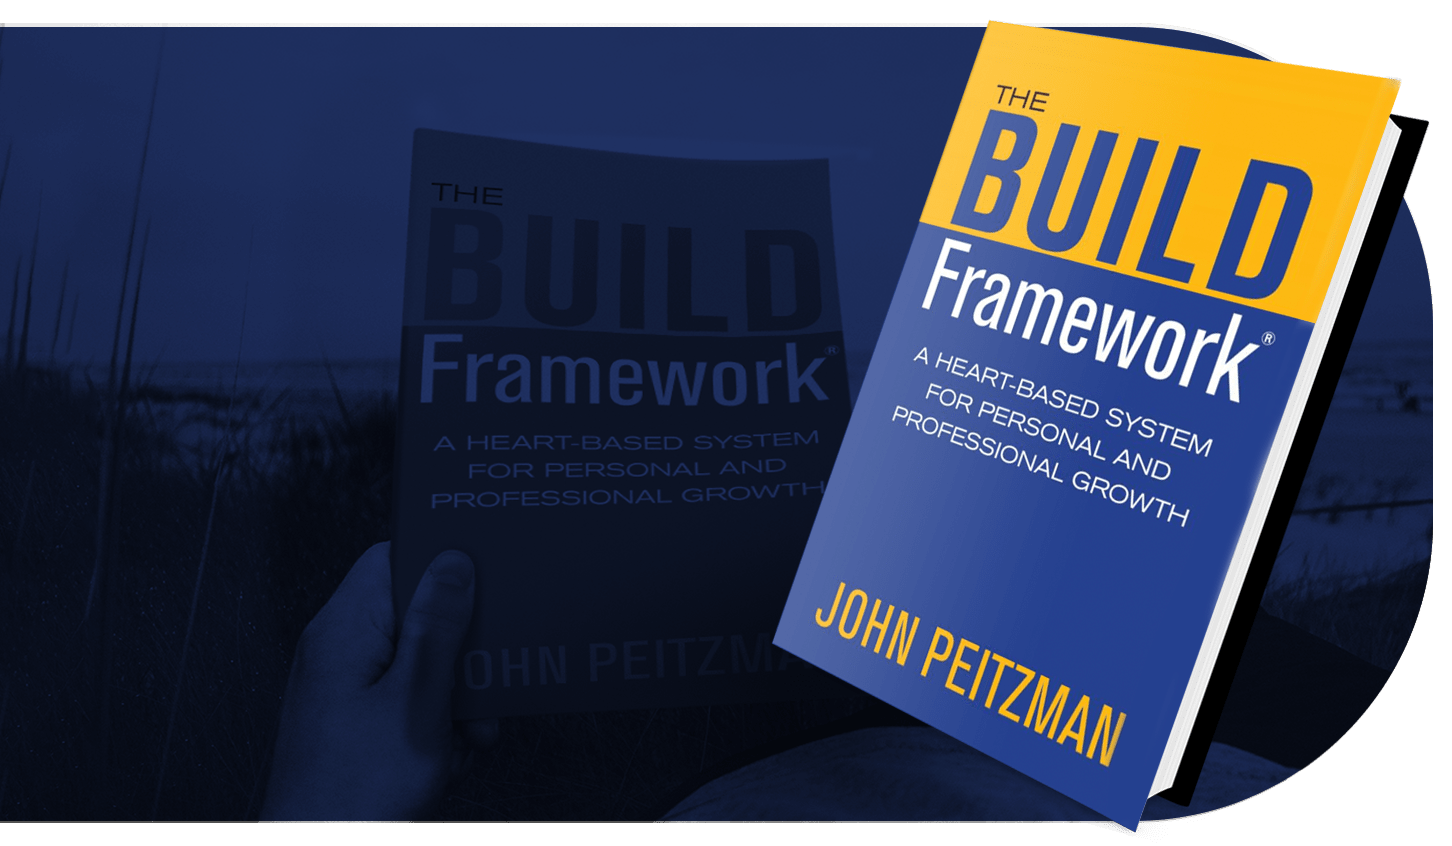 The Build Framework Book